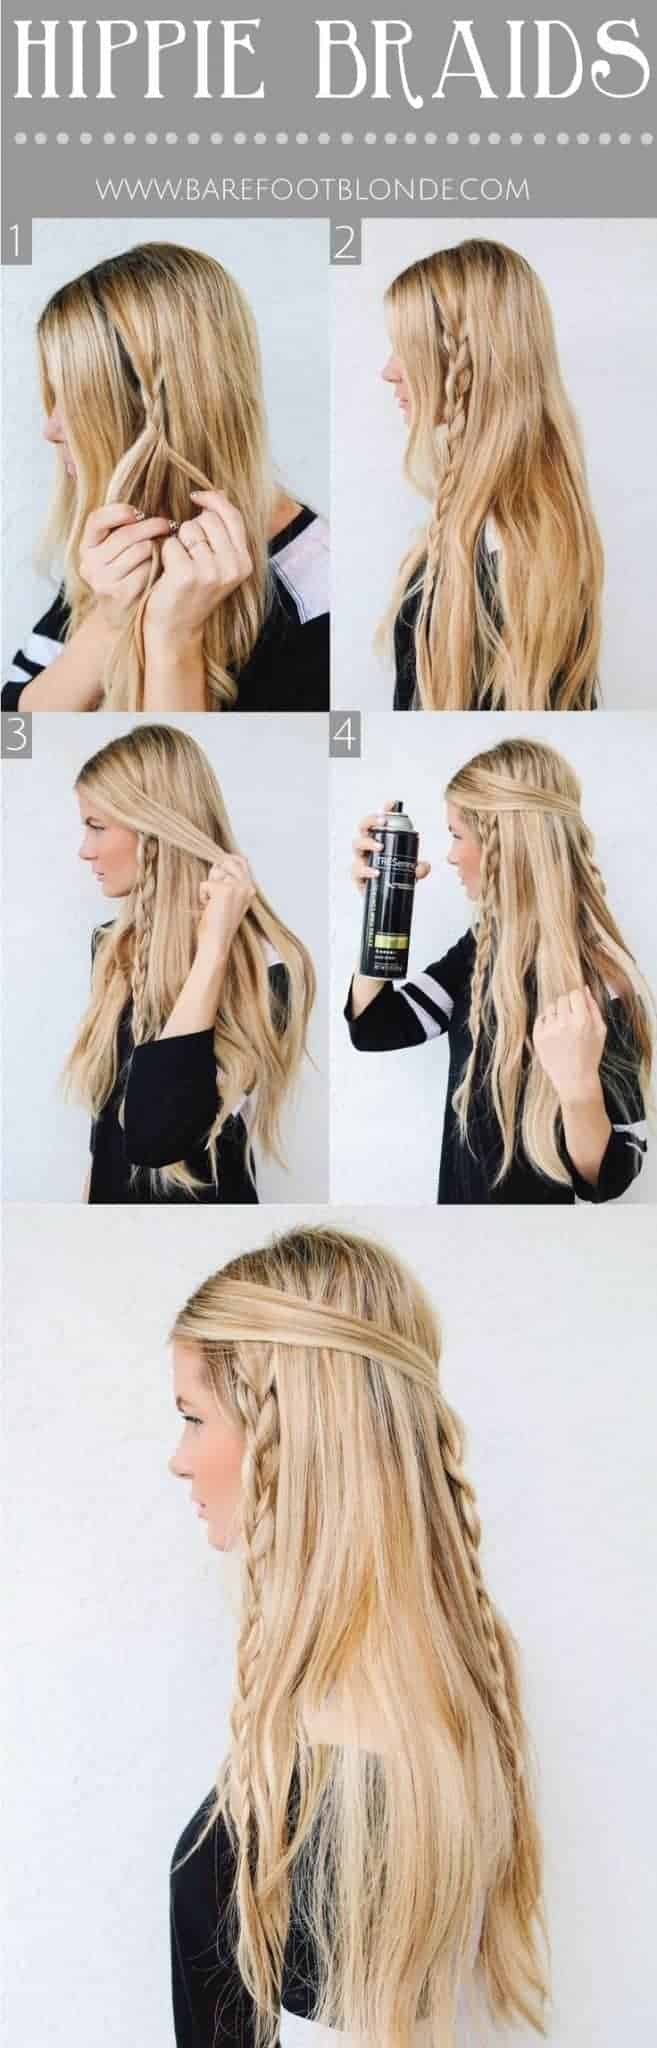 Hippie hairstyles for hippie braids